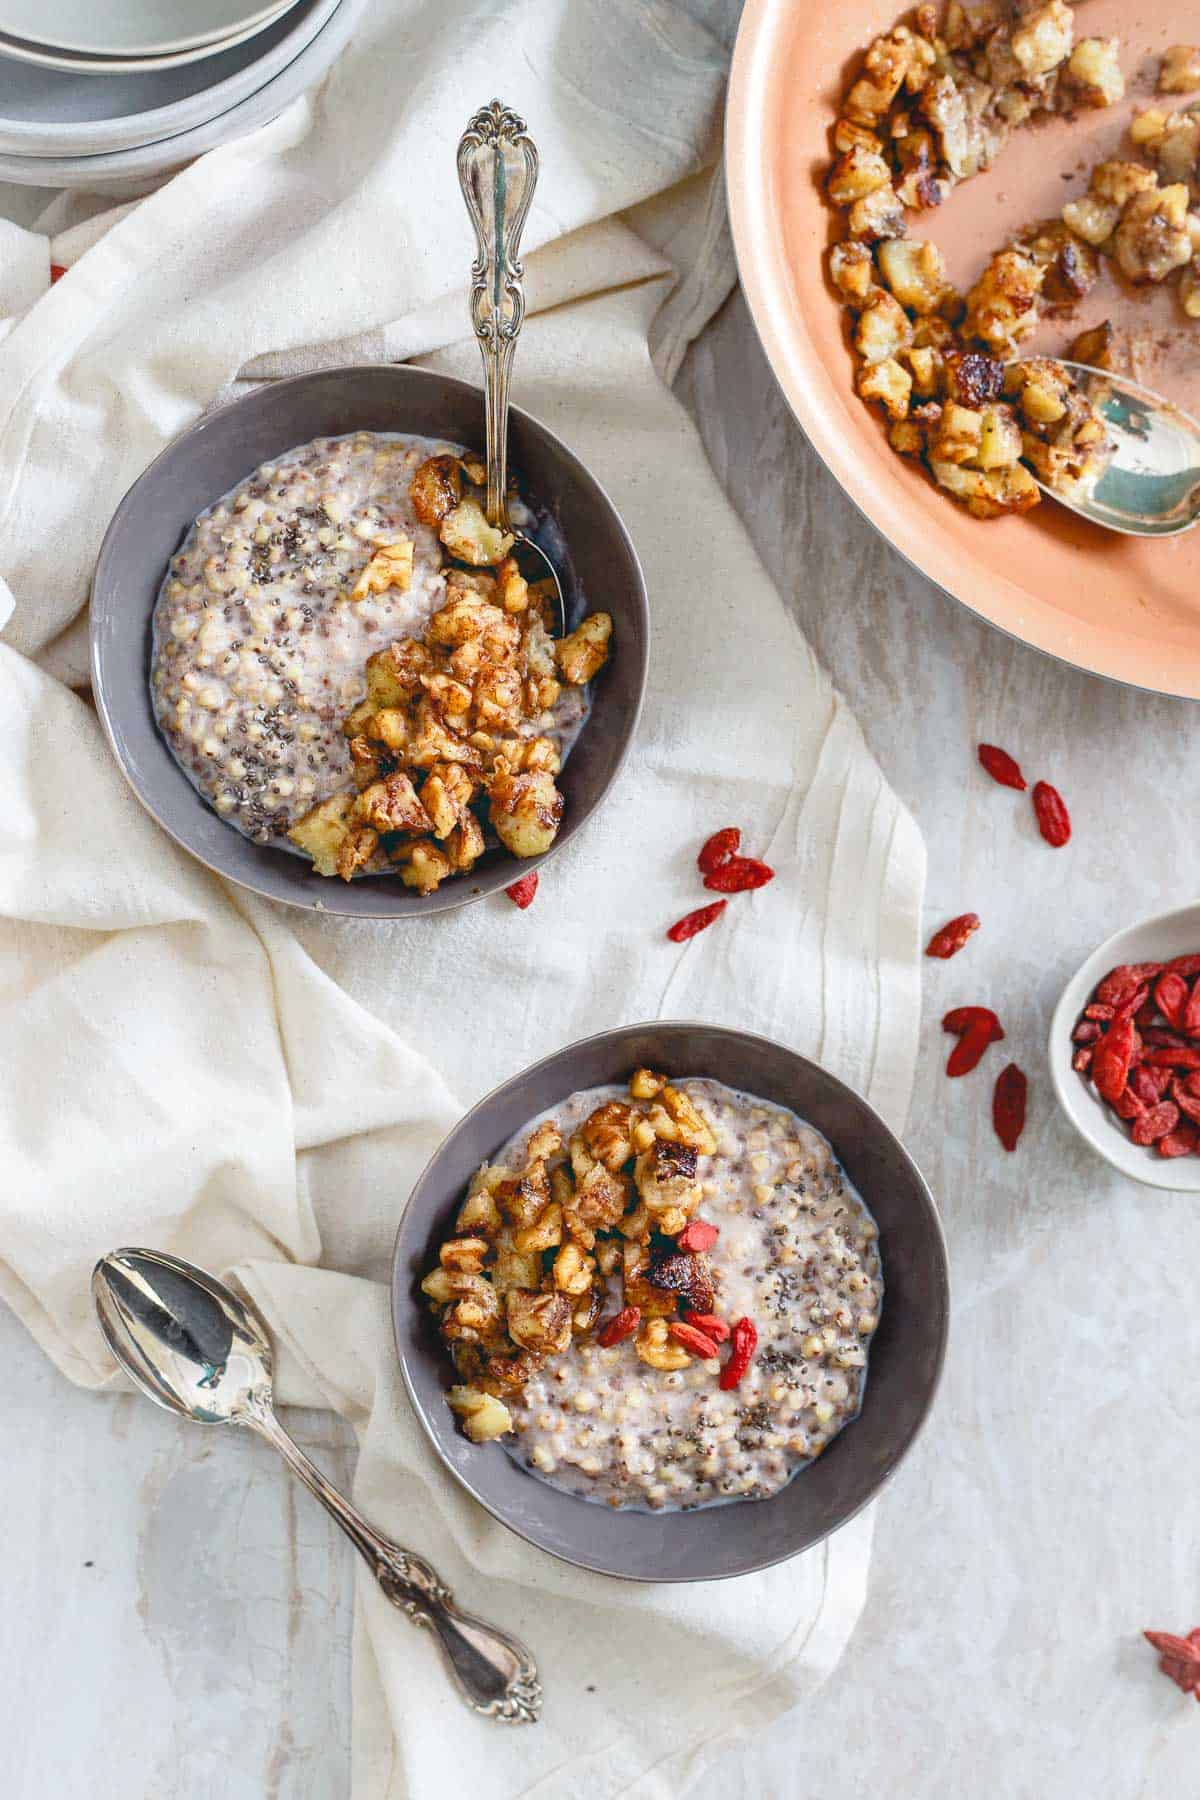 Warm quinoa cereal topped with caramelized bananas this warm breakfast cereal made with quinoa or buckwheat groats is topped with a sweet caramelized ccuart Choice Image